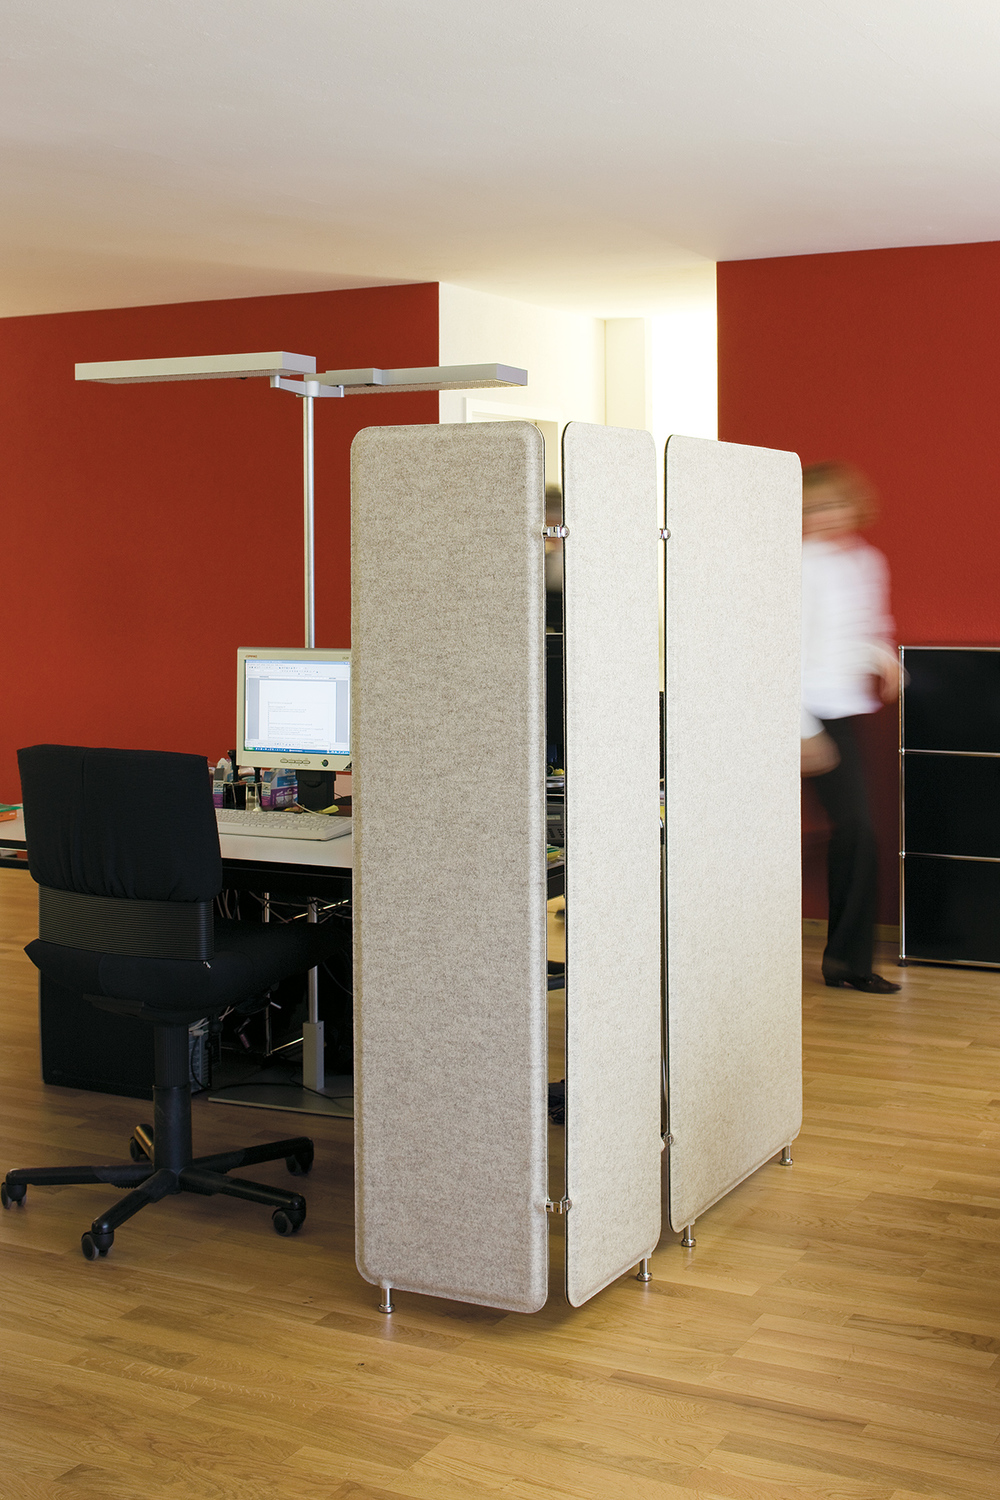 PANNELLO PARAVENT Pannello Paravent stands on two legs, can be enlarged at discretion and is designed for use as an optical room partition.